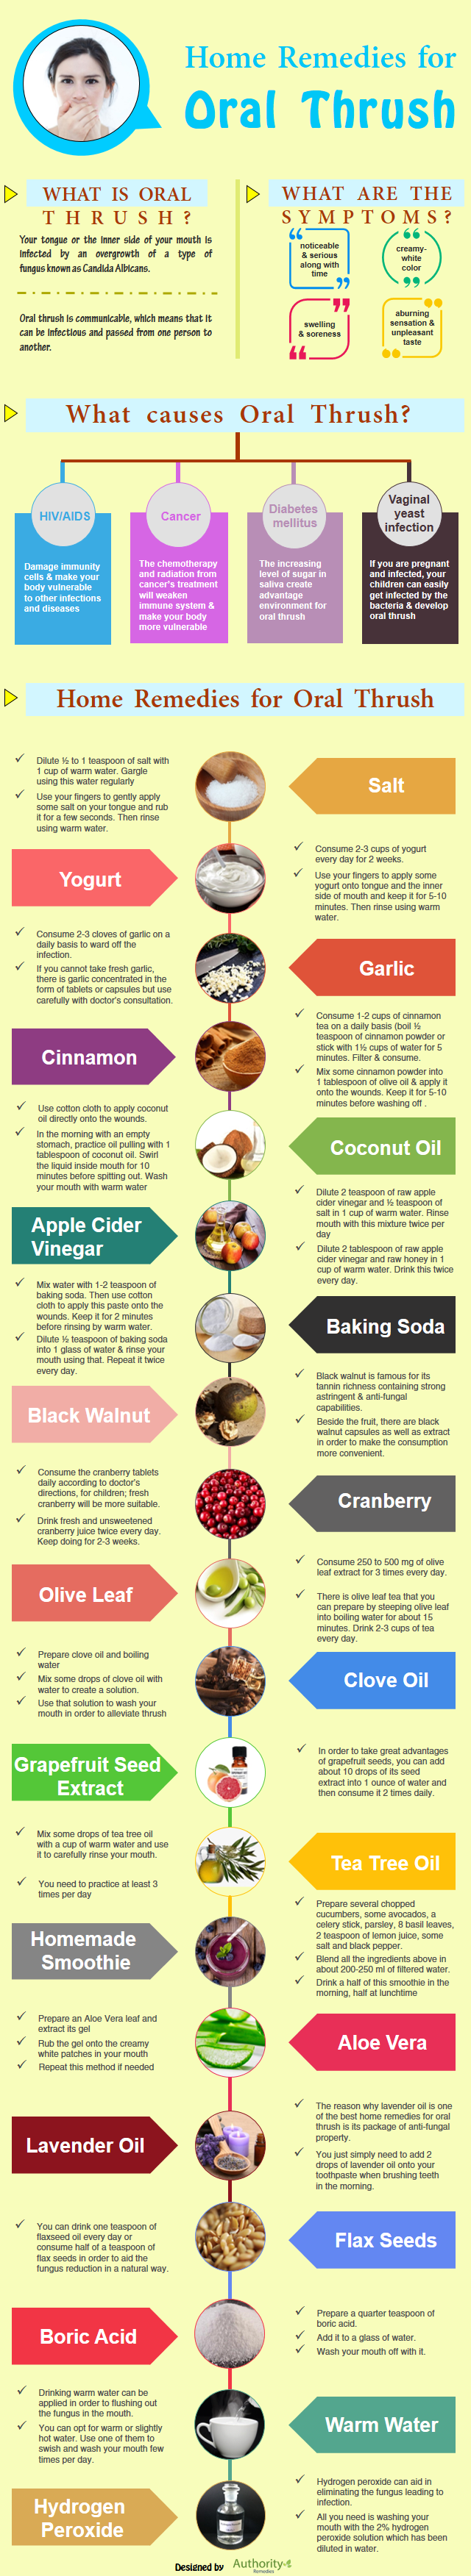 Home Remedies for Oral Thrush - Infographic